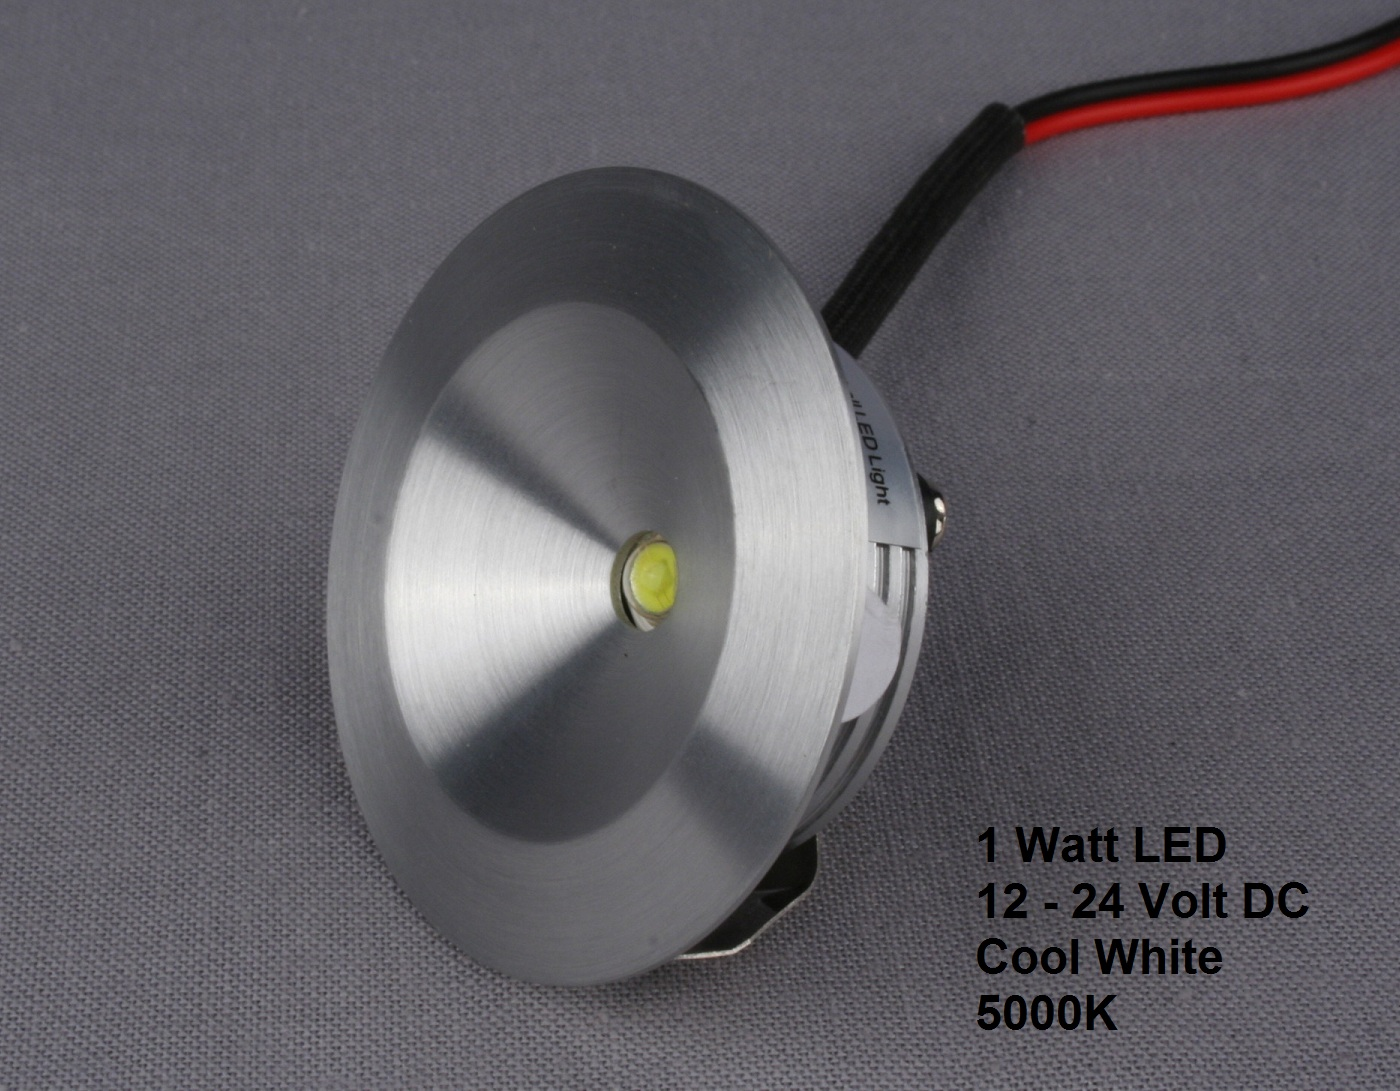 Mini Downlight Led Fixture 12 24 Vdc Or 110 220vac